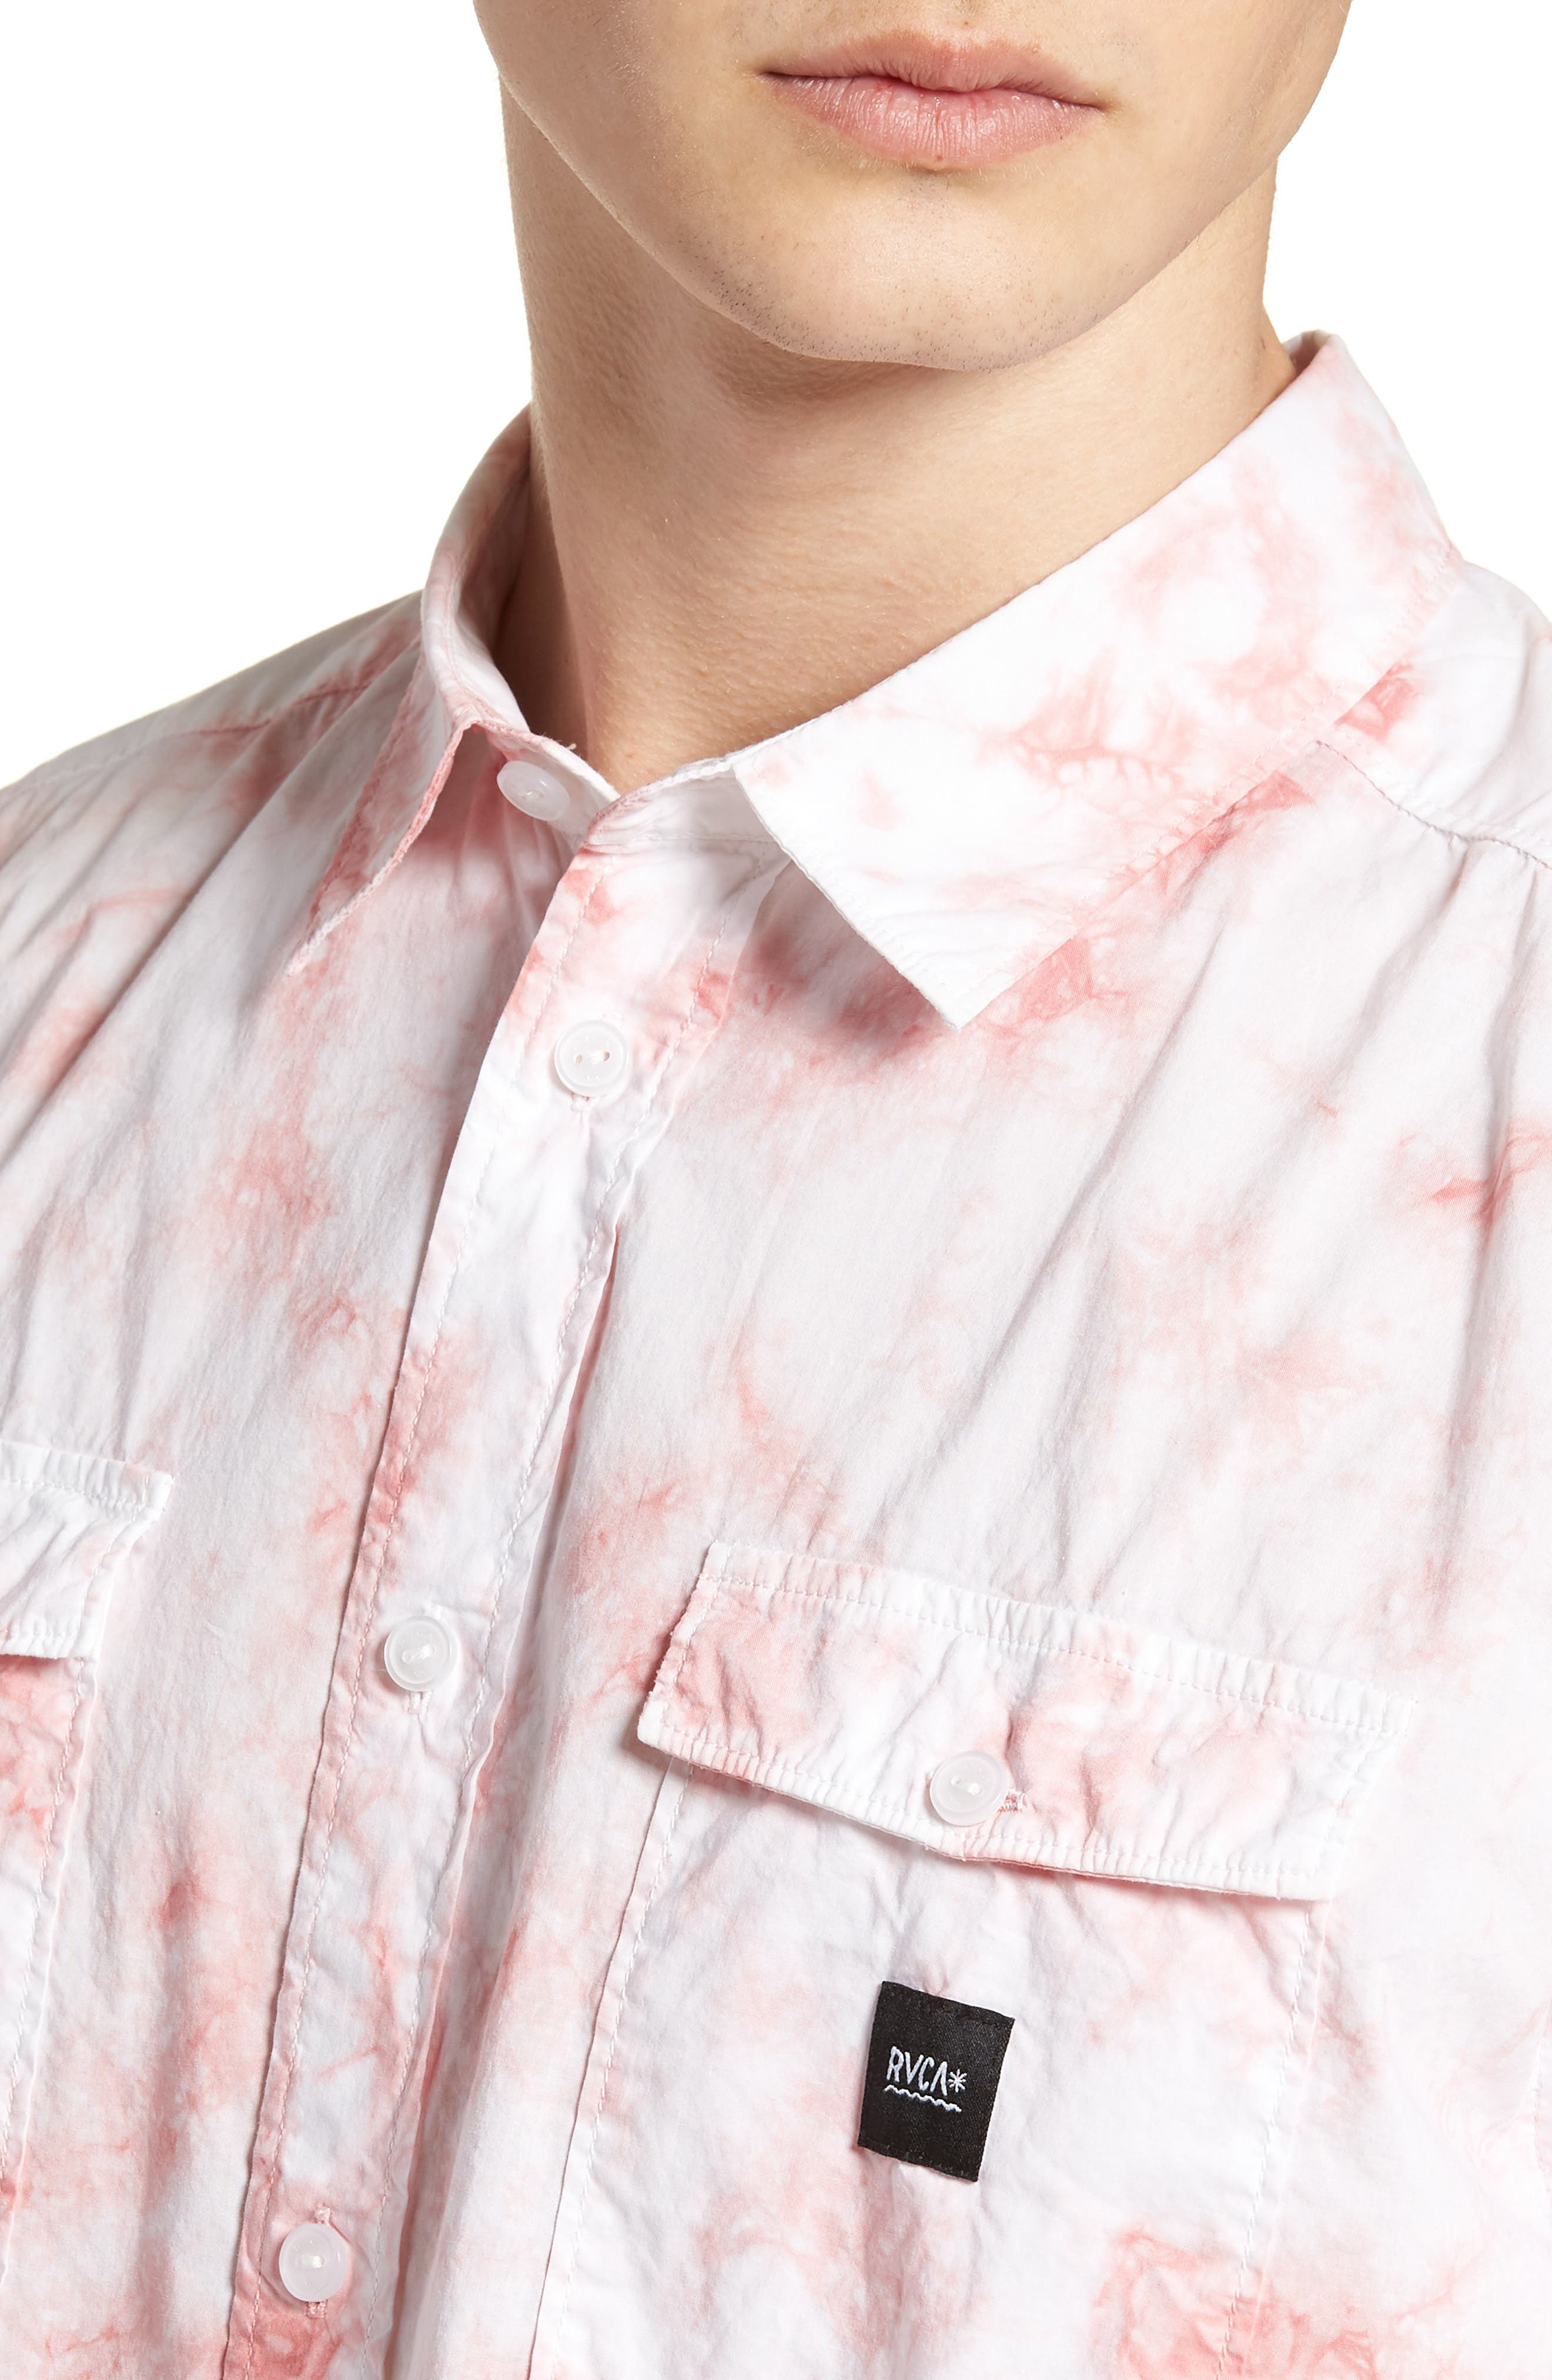 Destroy Woven Shirt,                             Alternate thumbnail 4, color,                             200